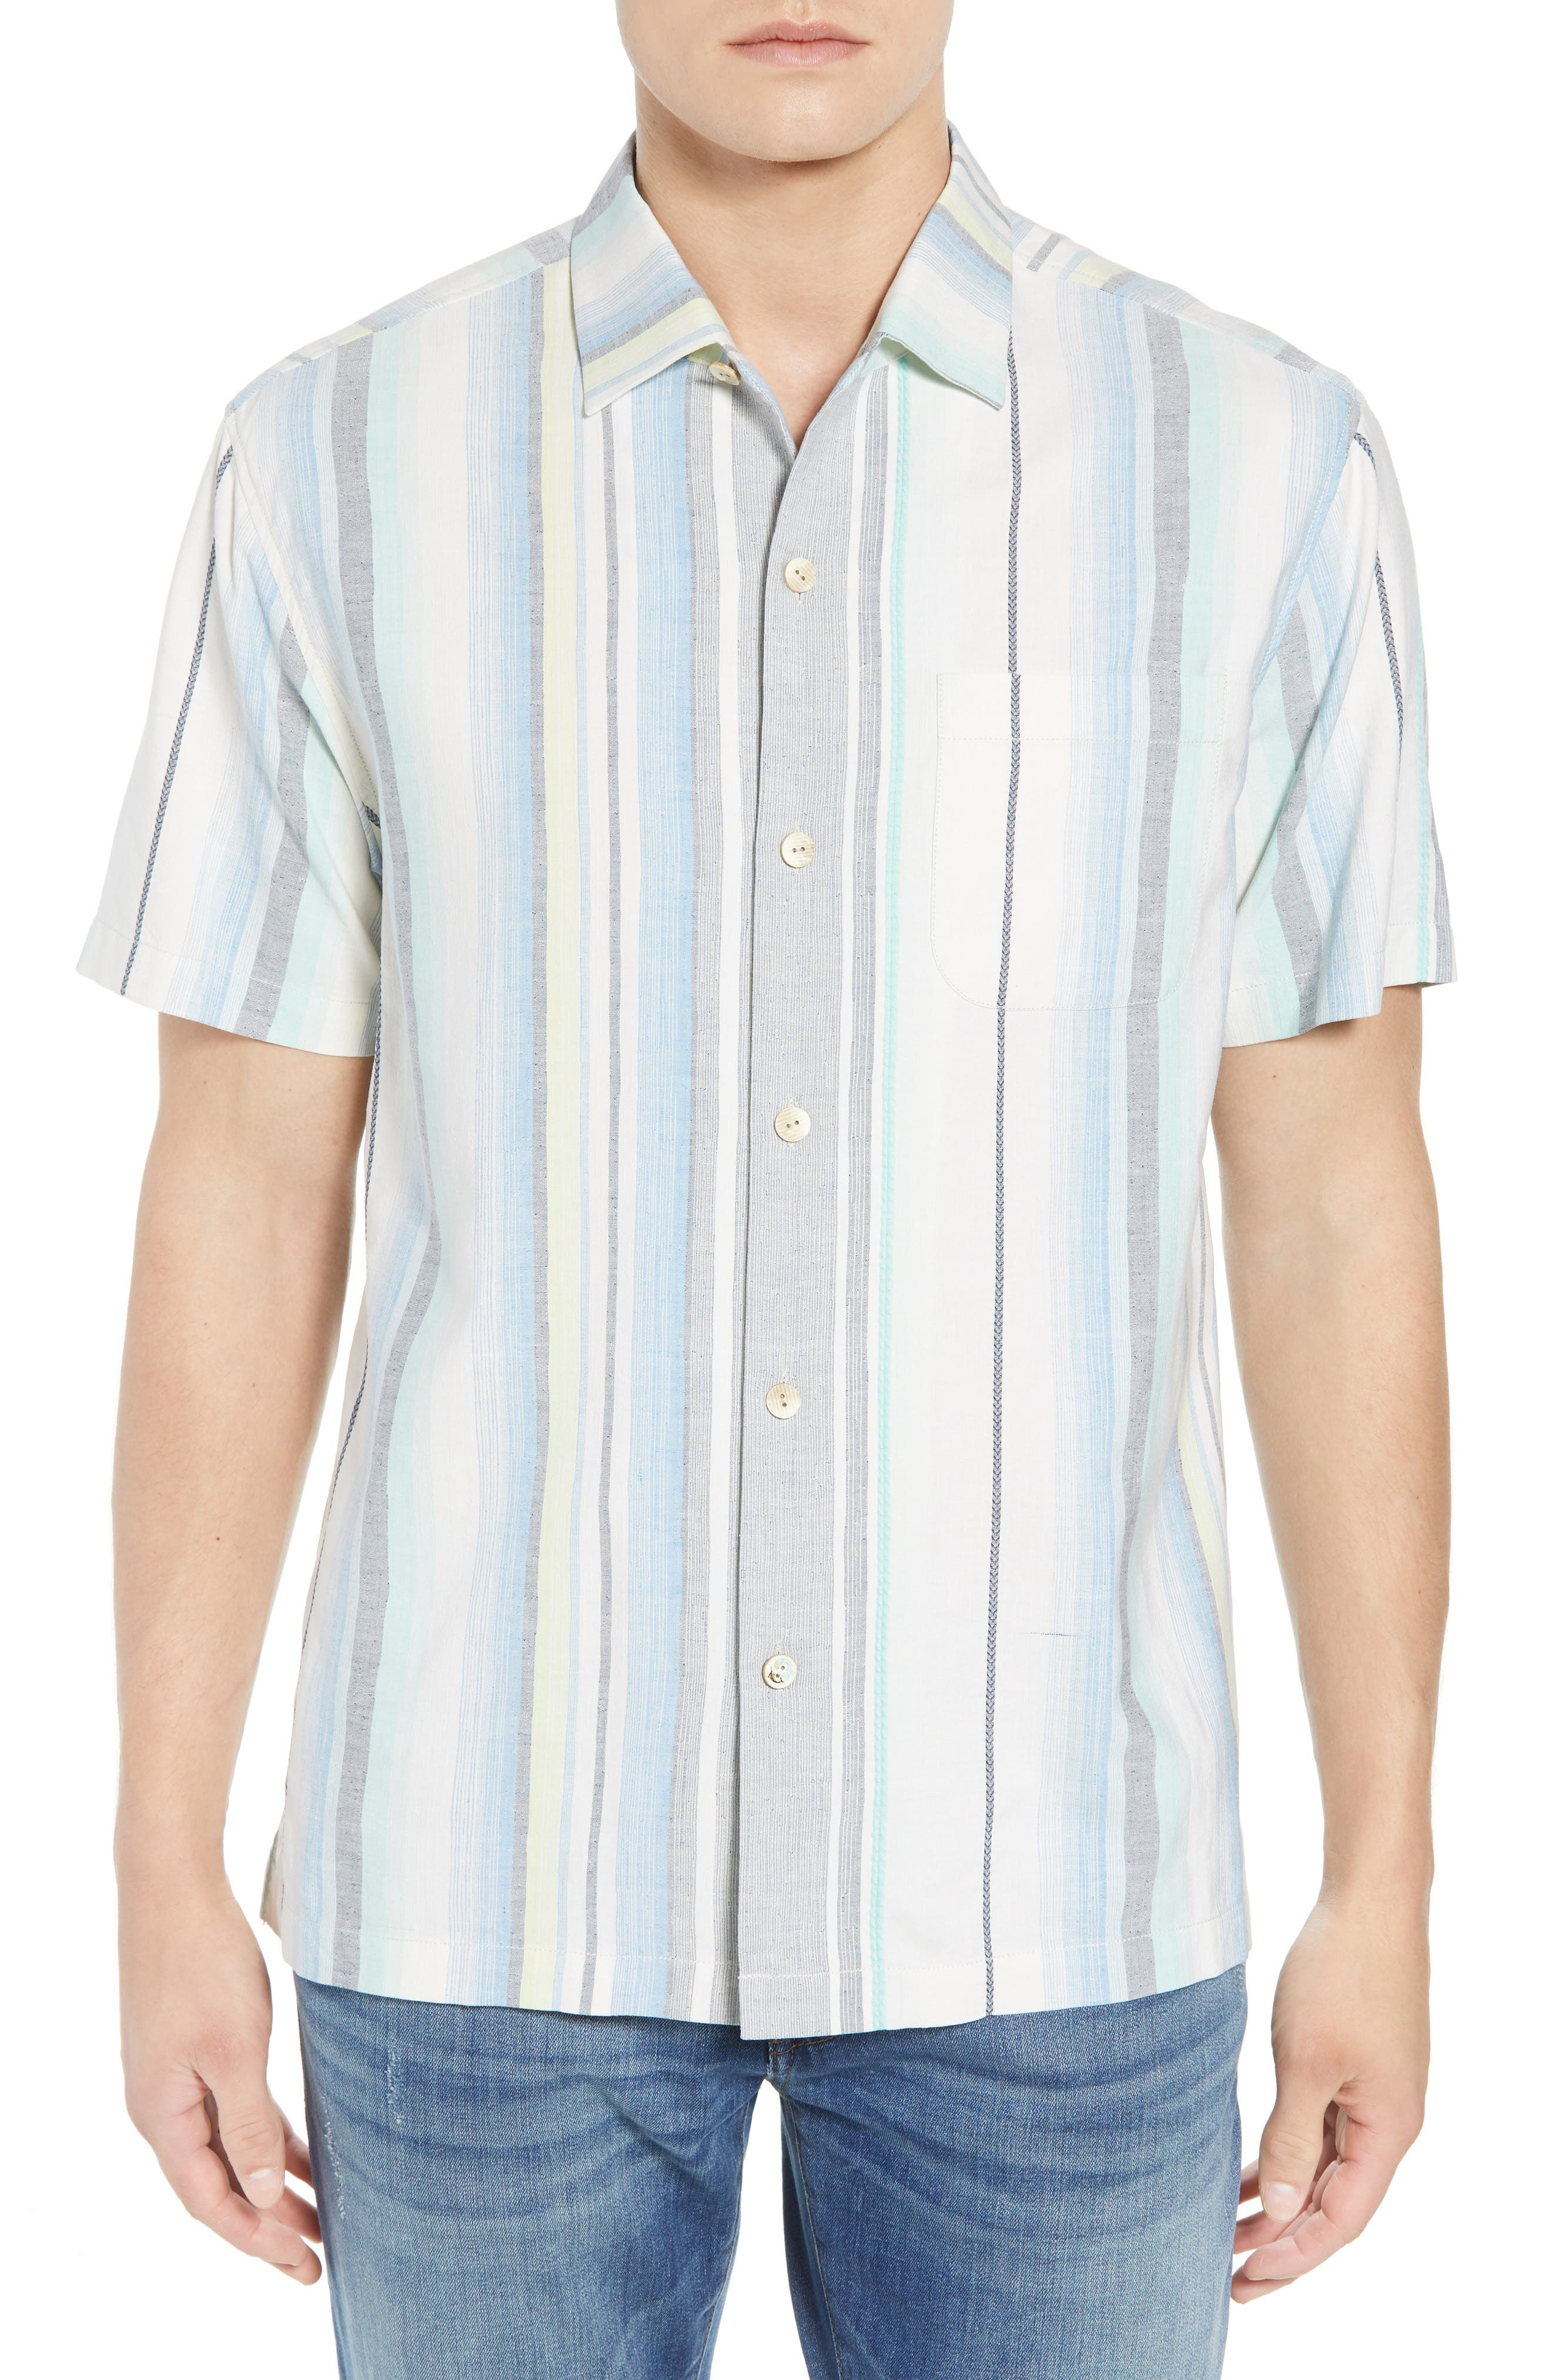 Posado Sands Silk Camp Shirt,                         Main,                         color, BLUE ASTER